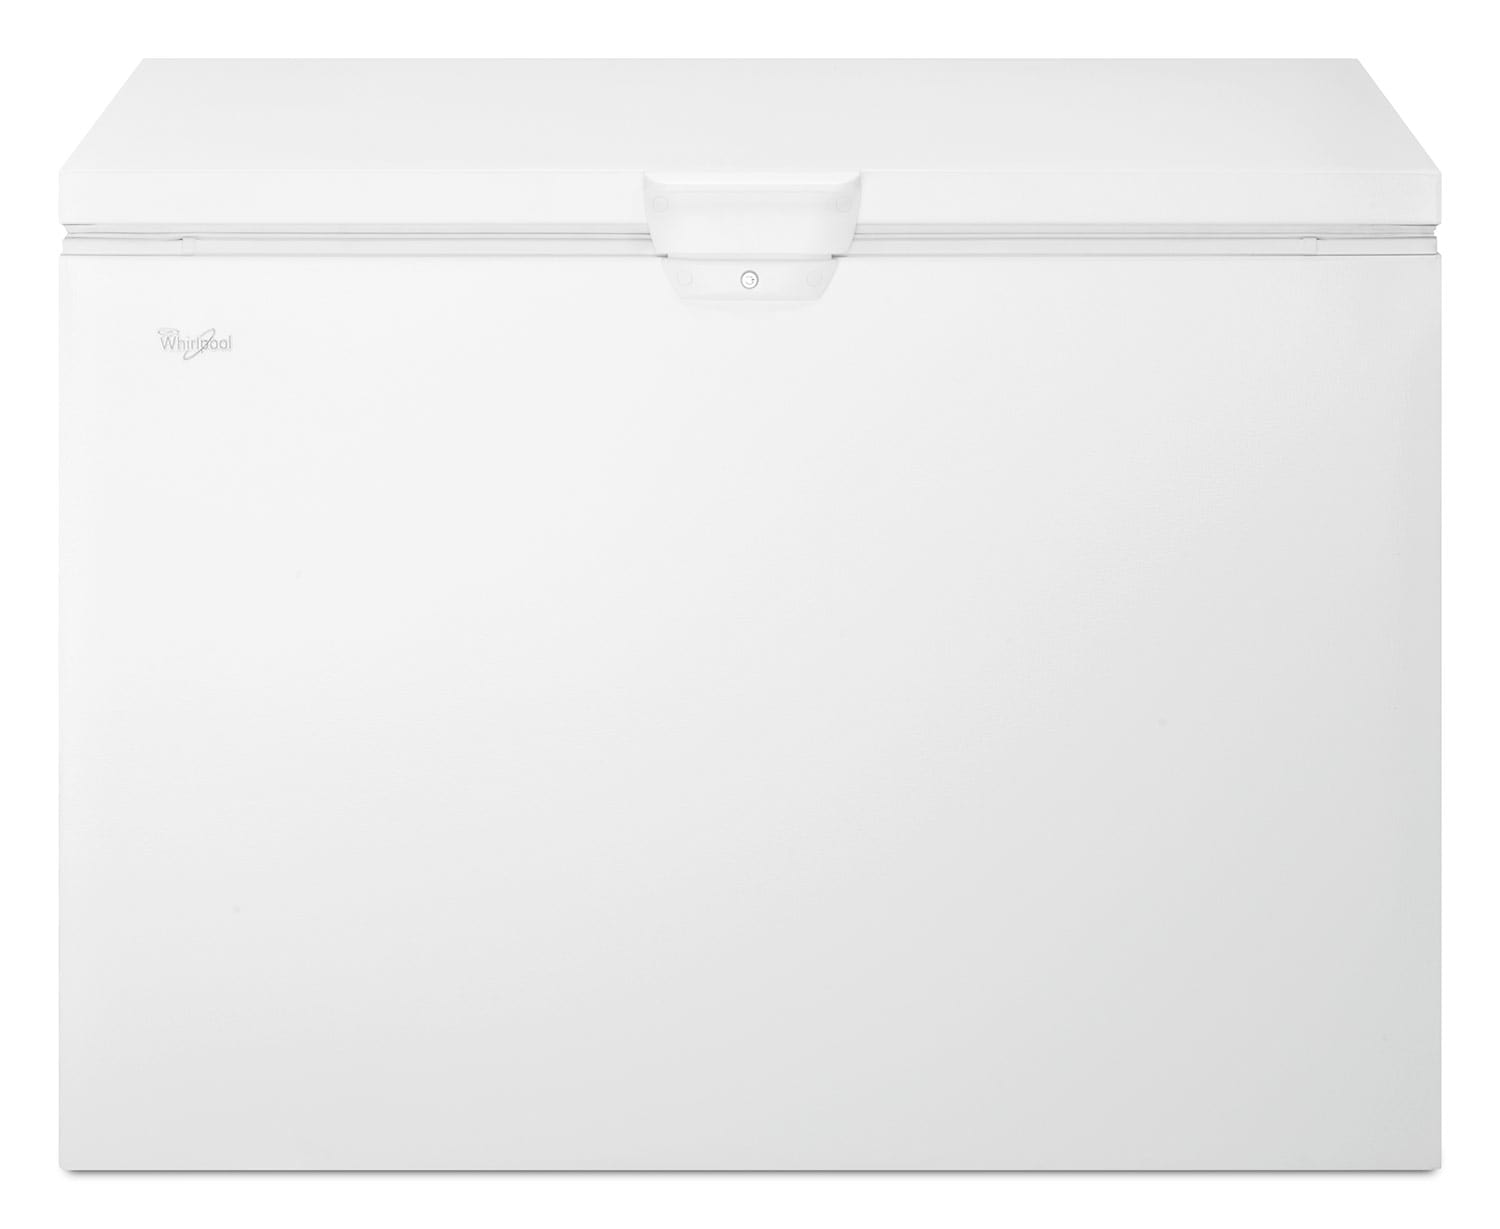 Refrigerators and Freezers - Whirlpool White Chest Freezer (14.8 Cu. Ft.) - WZC3115DW